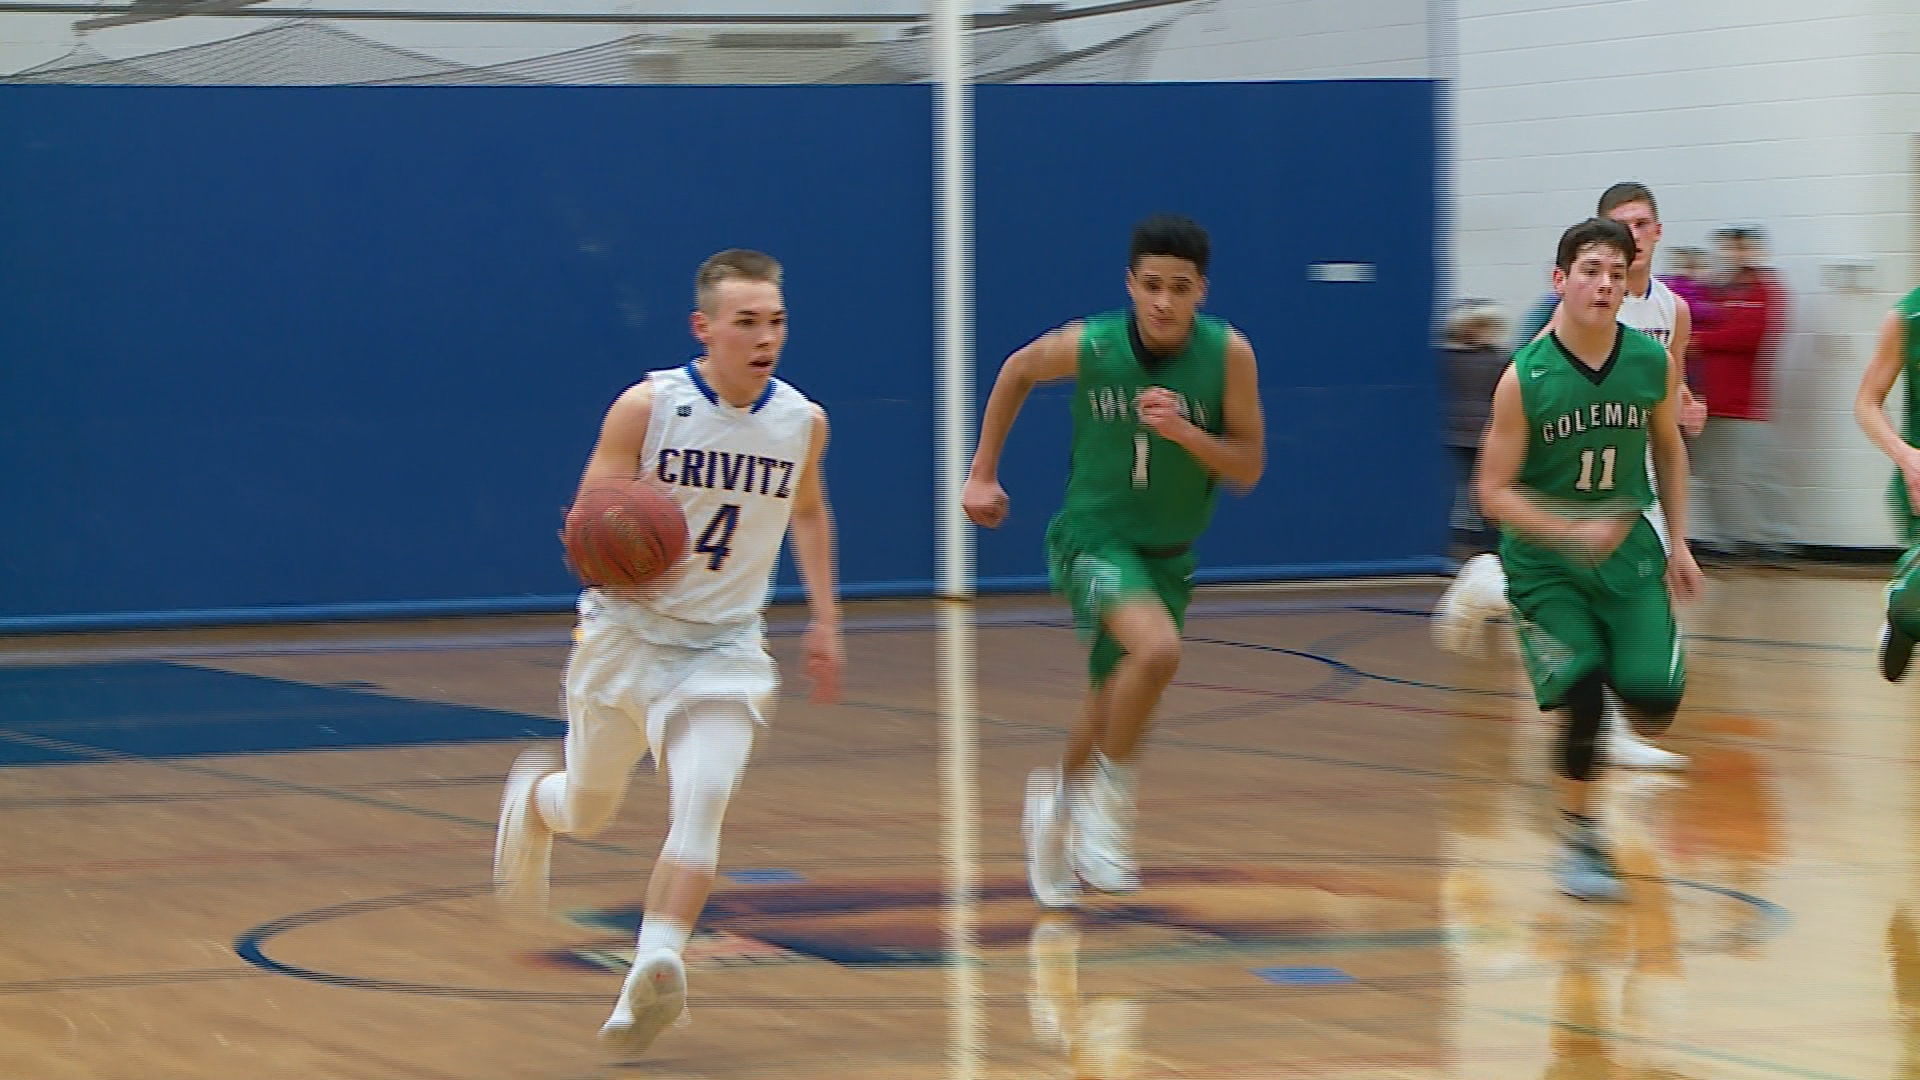 Crivitz guard Jaden Werber dribbles against Coleman in a boys regional semifinal game (PHOTO/WLUK){&amp;nbsp;}<p></p>